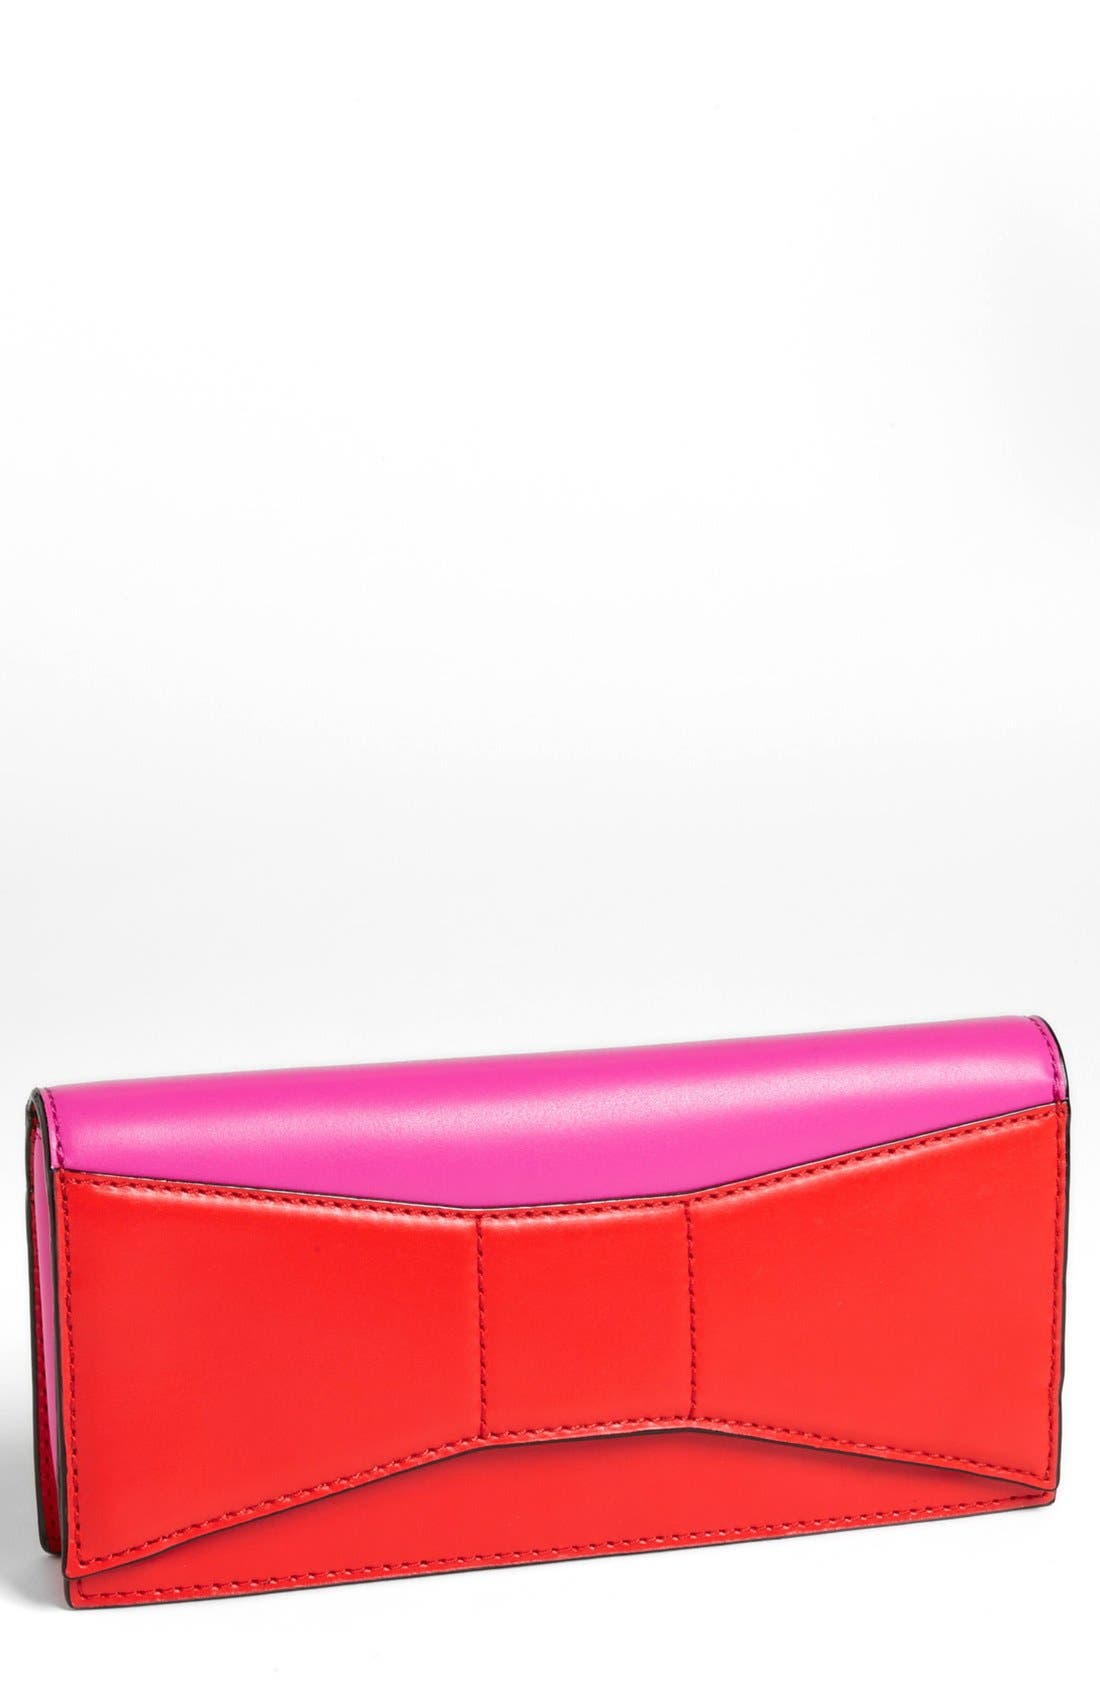 Alternate Image 1 Selected - kate spade new york '2 park avenue beau' clutch